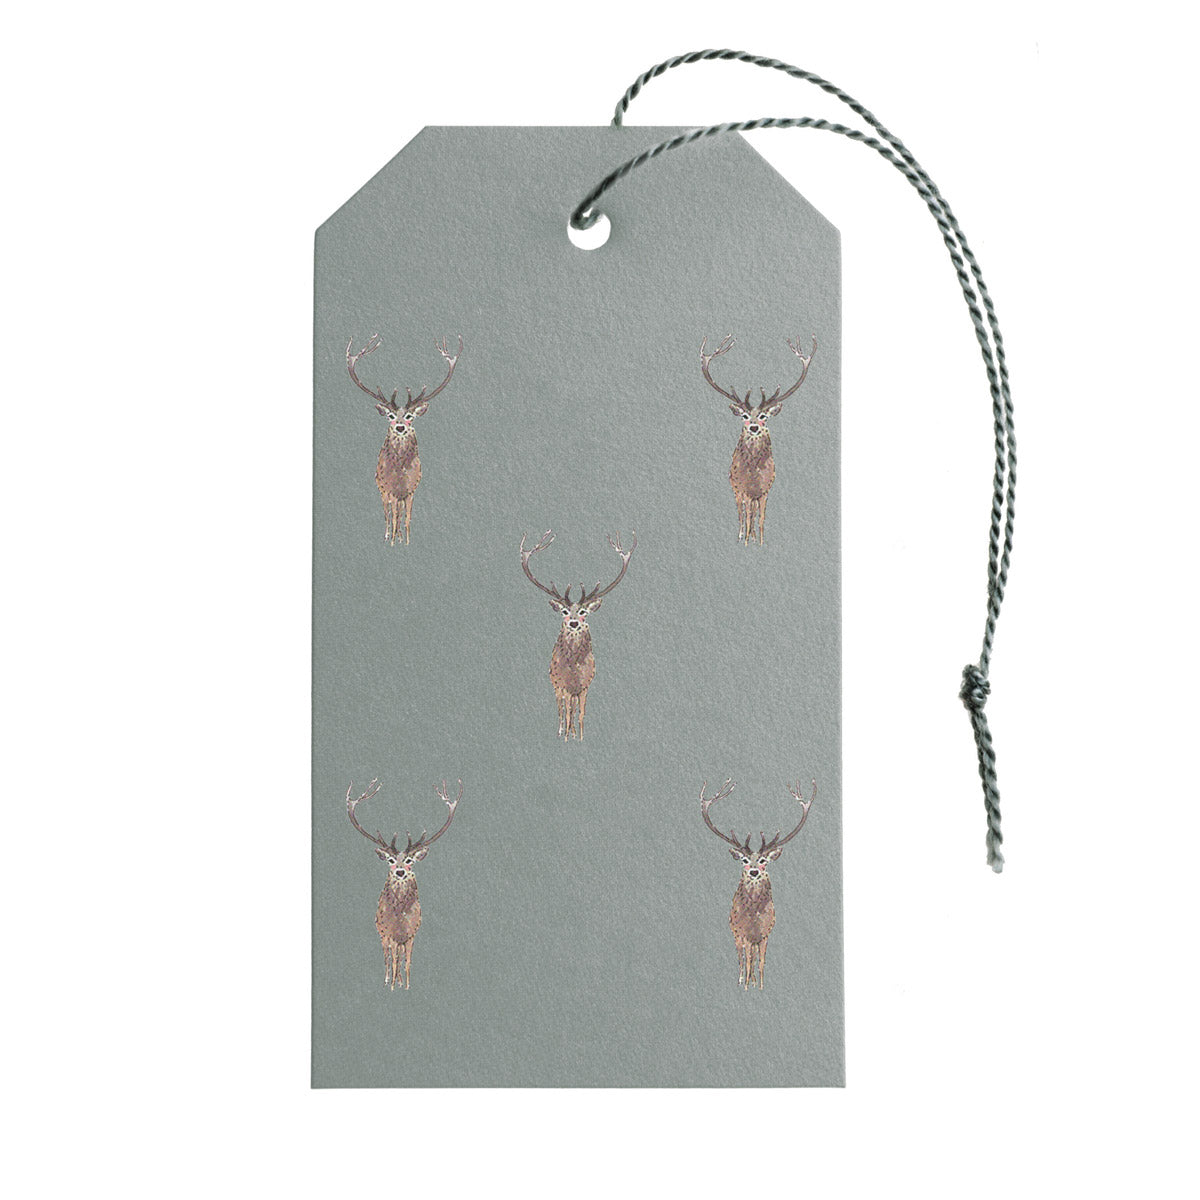 Highland Stag Gift Tags - Set of 10